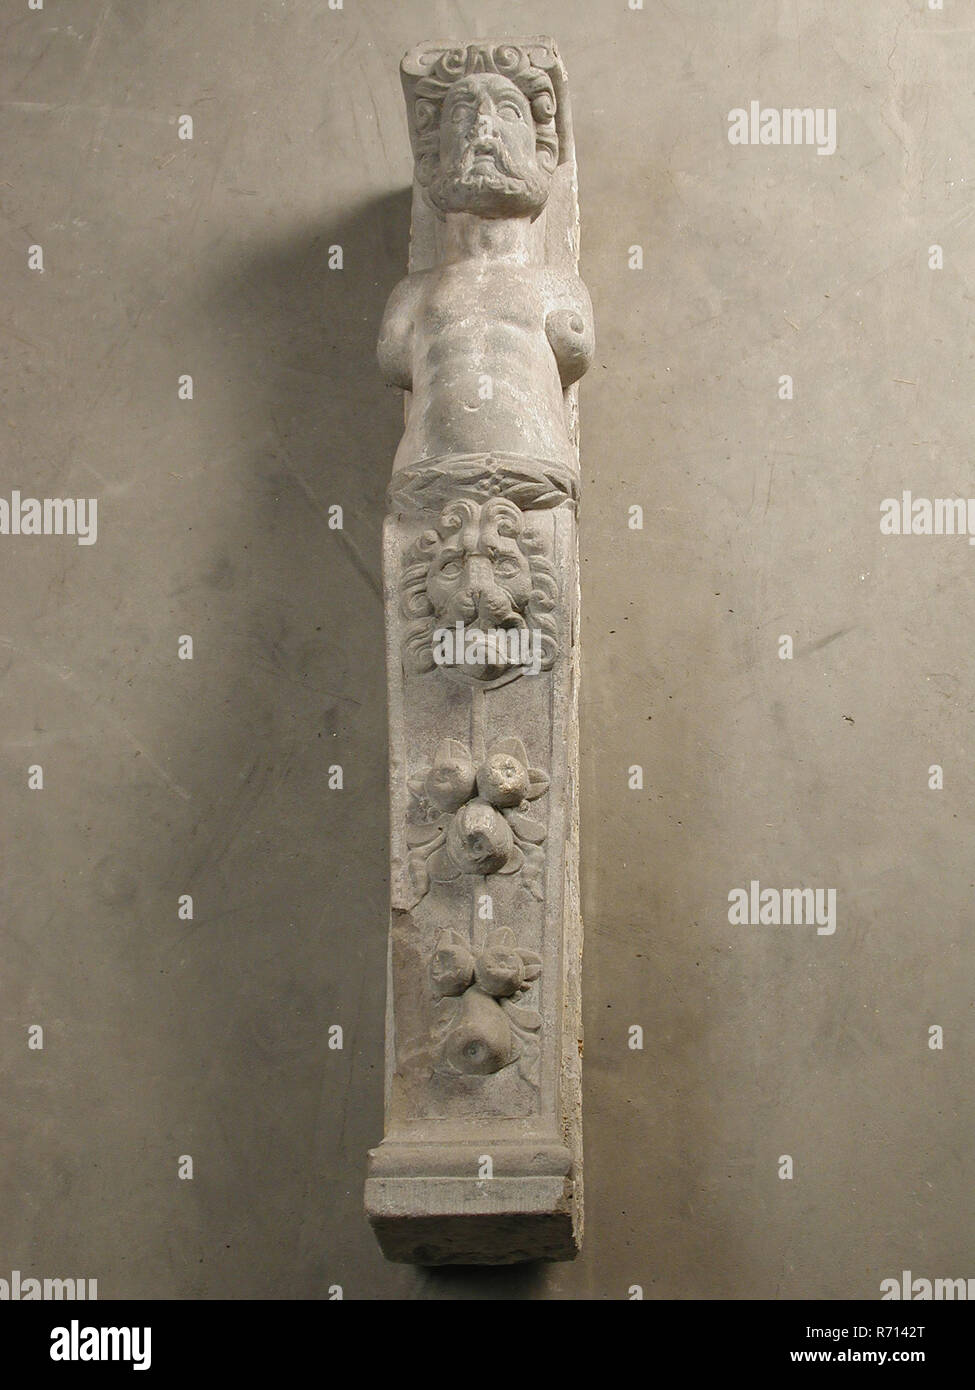 Atlant with ionic capital, atlant building element sculpture footage sandstone stone, sculpted Atlant with Ionic capitals man with beard Arms abstracted to curl around the waist leaf. Lower half is column: at the top lion's head in the middle fruit. - Stock Image